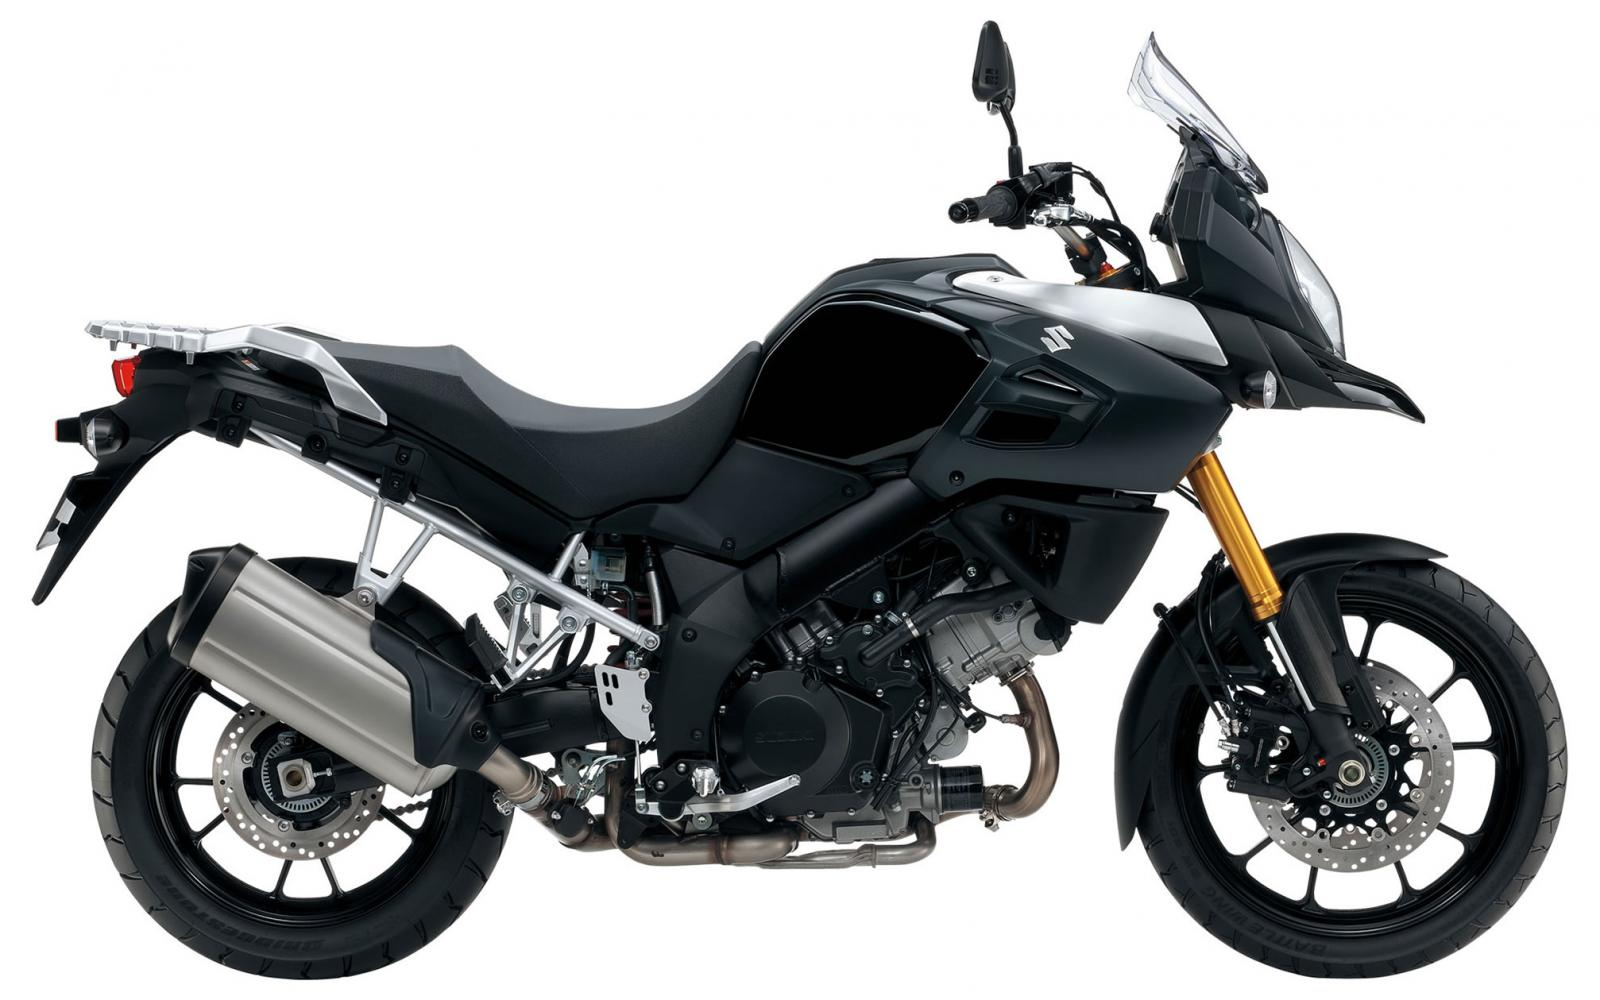 2014 suzuki v strom 1000 abs moto zombdrive com. Black Bedroom Furniture Sets. Home Design Ideas